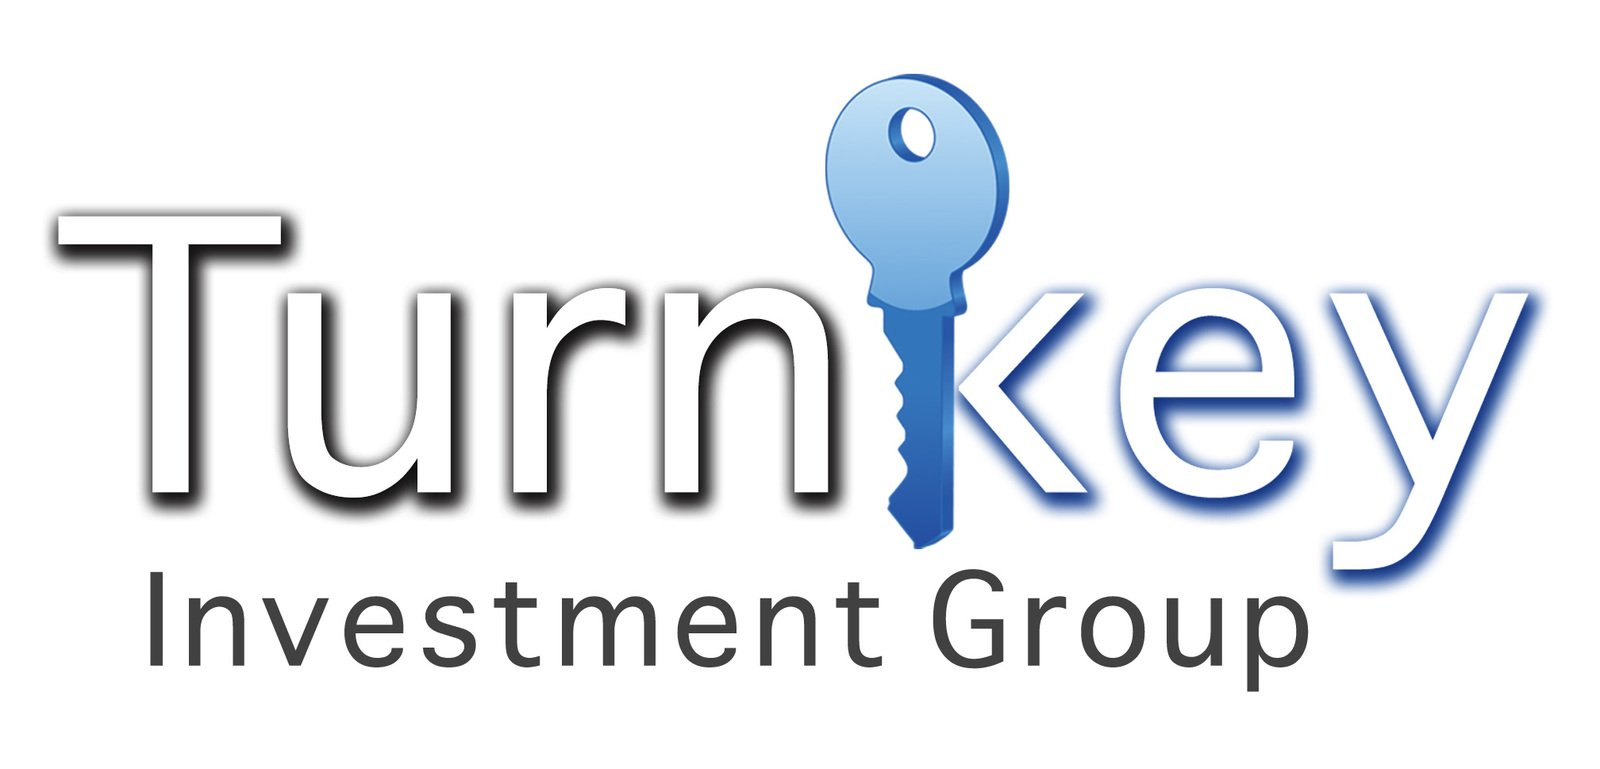 Turnkey Investment Group